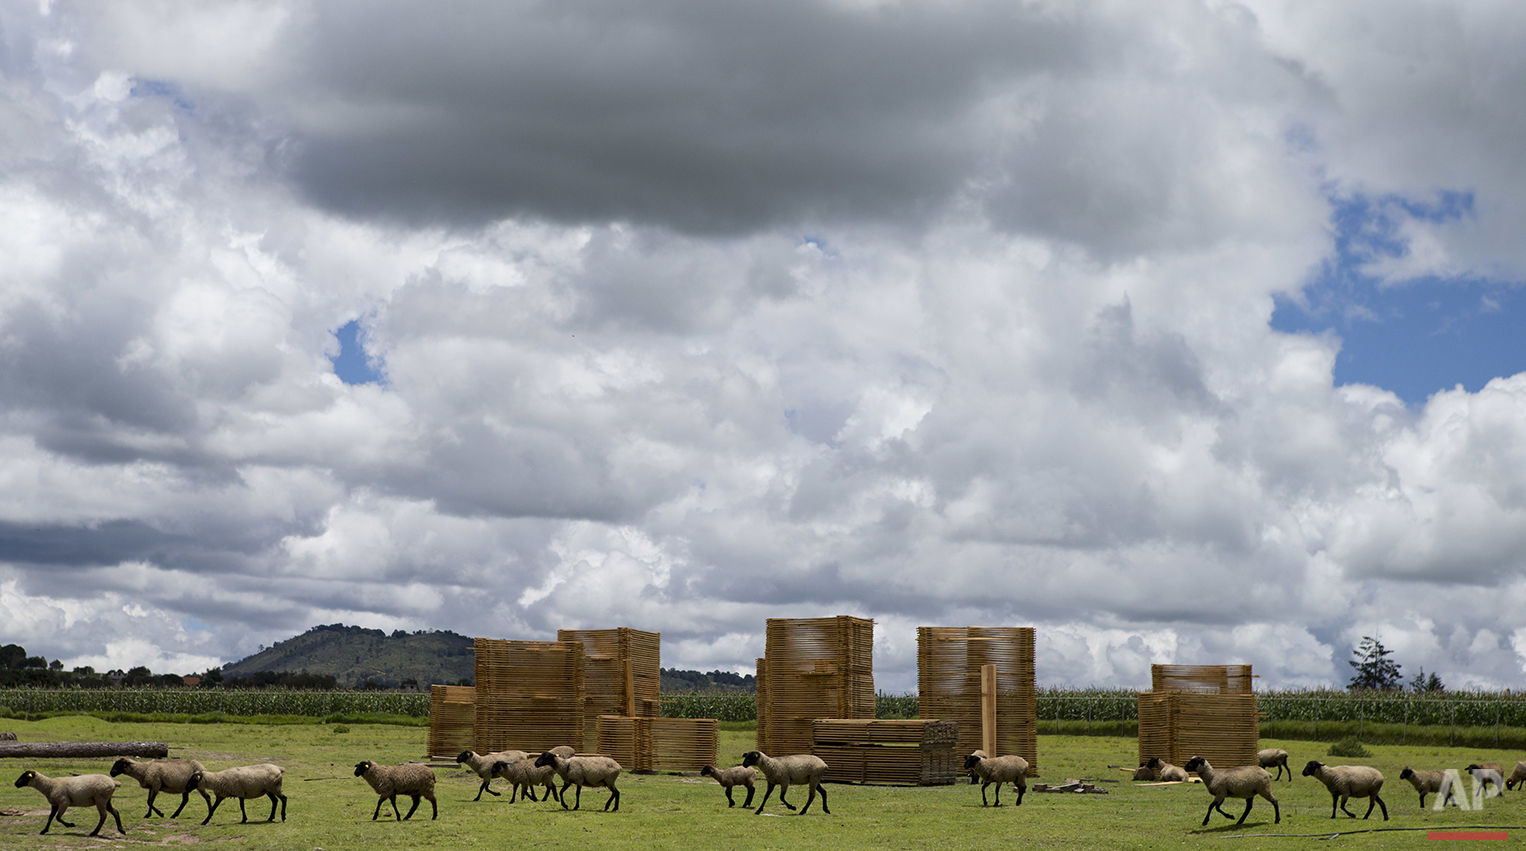 In this July 22, 2016 photo, sheep walk past stacks of finished lumber, at a sawmill belonging to Piedra Canteada, outside Nanacamilpa, Tlaxcala state, Mexico. The families who own the forest that includes Piedra Canteada have been exploiting their government permitted cuota of lumber for decades. But in the five years since they began advertising firefly tours, their tourist income from the two month season has surpassed what they can make from a year of logging. The income is also more reliable, since the national forest service can halt logging for years at a time if blight or dry weather is hindering growth. (AP Photo/Rebecca Blackwell)